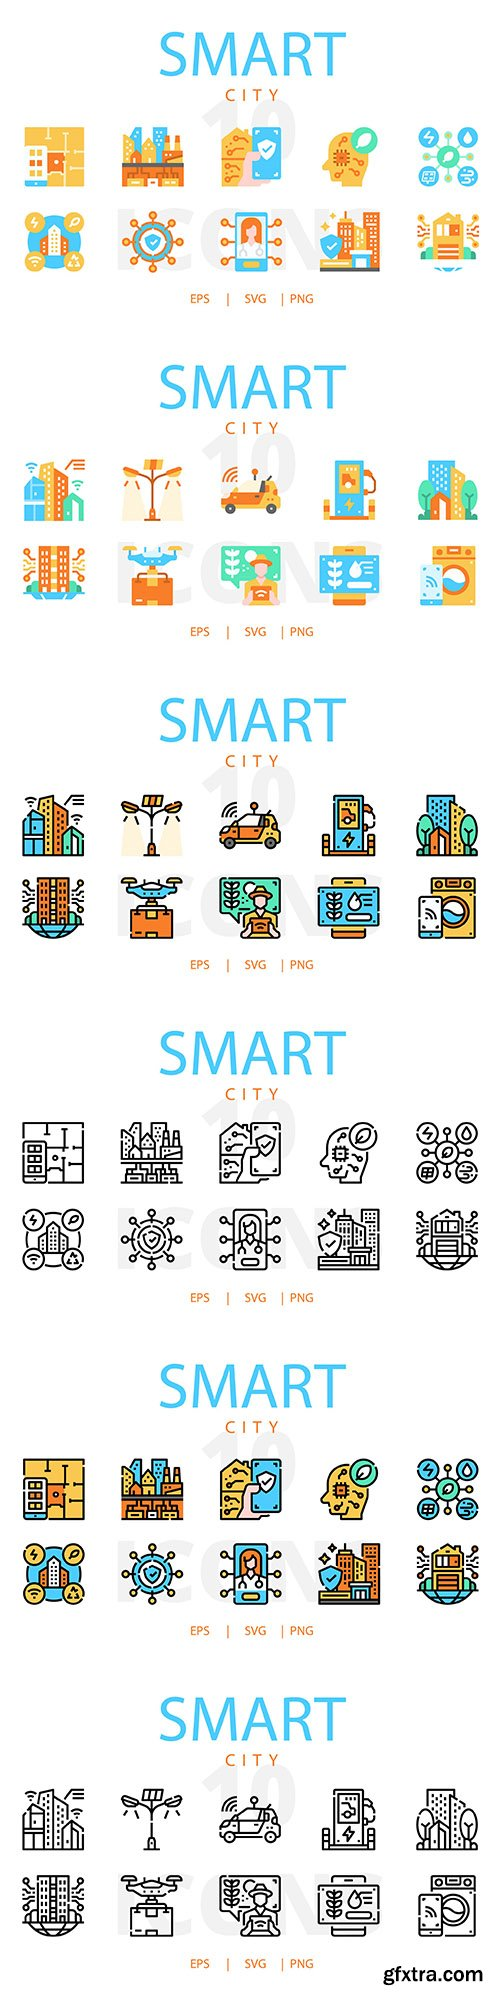 Smart City Vector Icons Collection